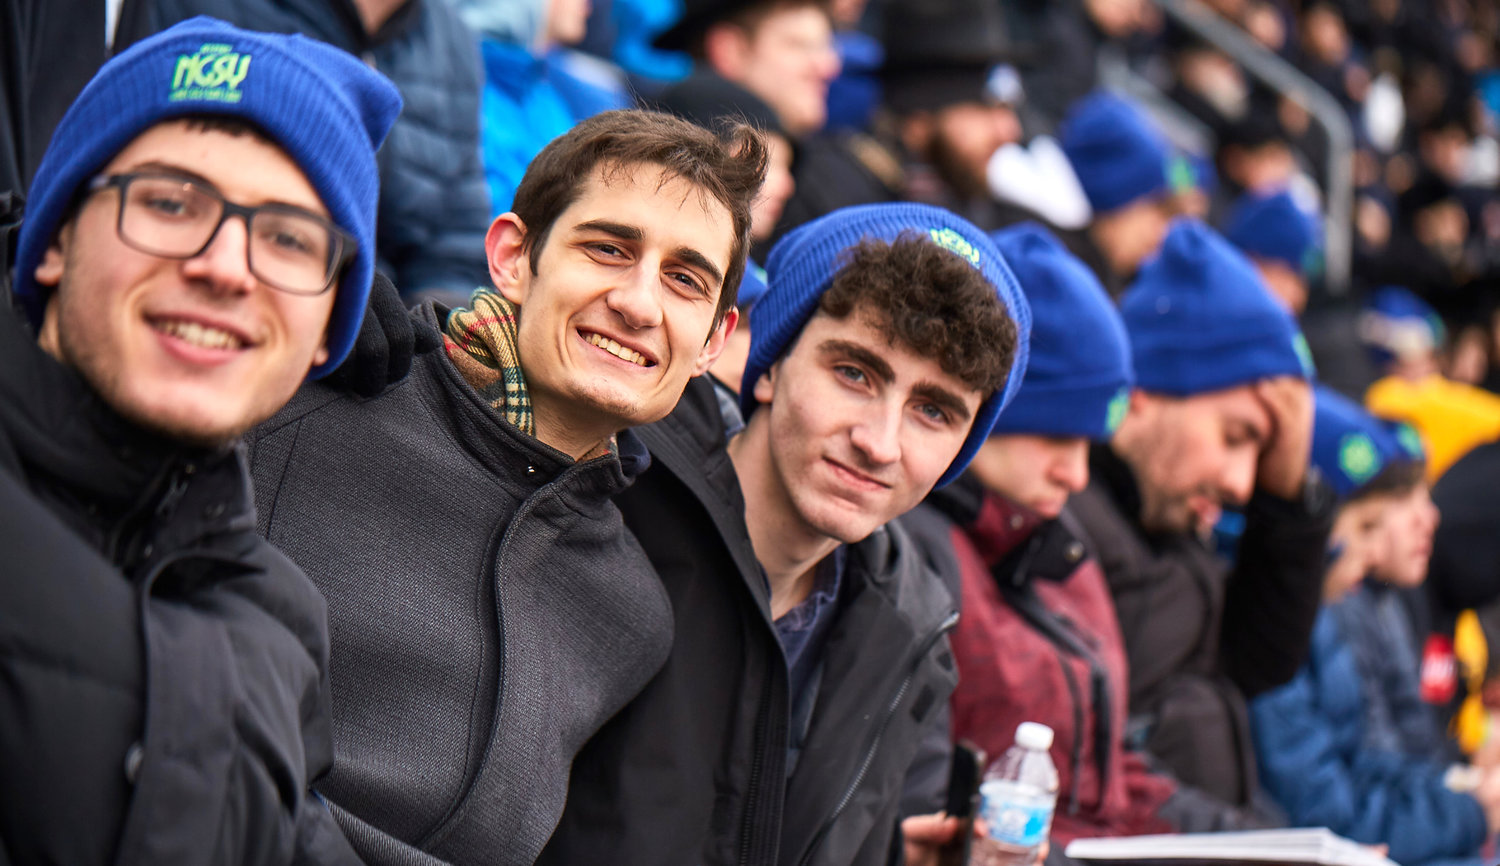 350 secular teens joined 90,000 Jews, overwhelmingly Orthodox, at the Siyum HaShas at MetLife Stadium on Jan. 1.